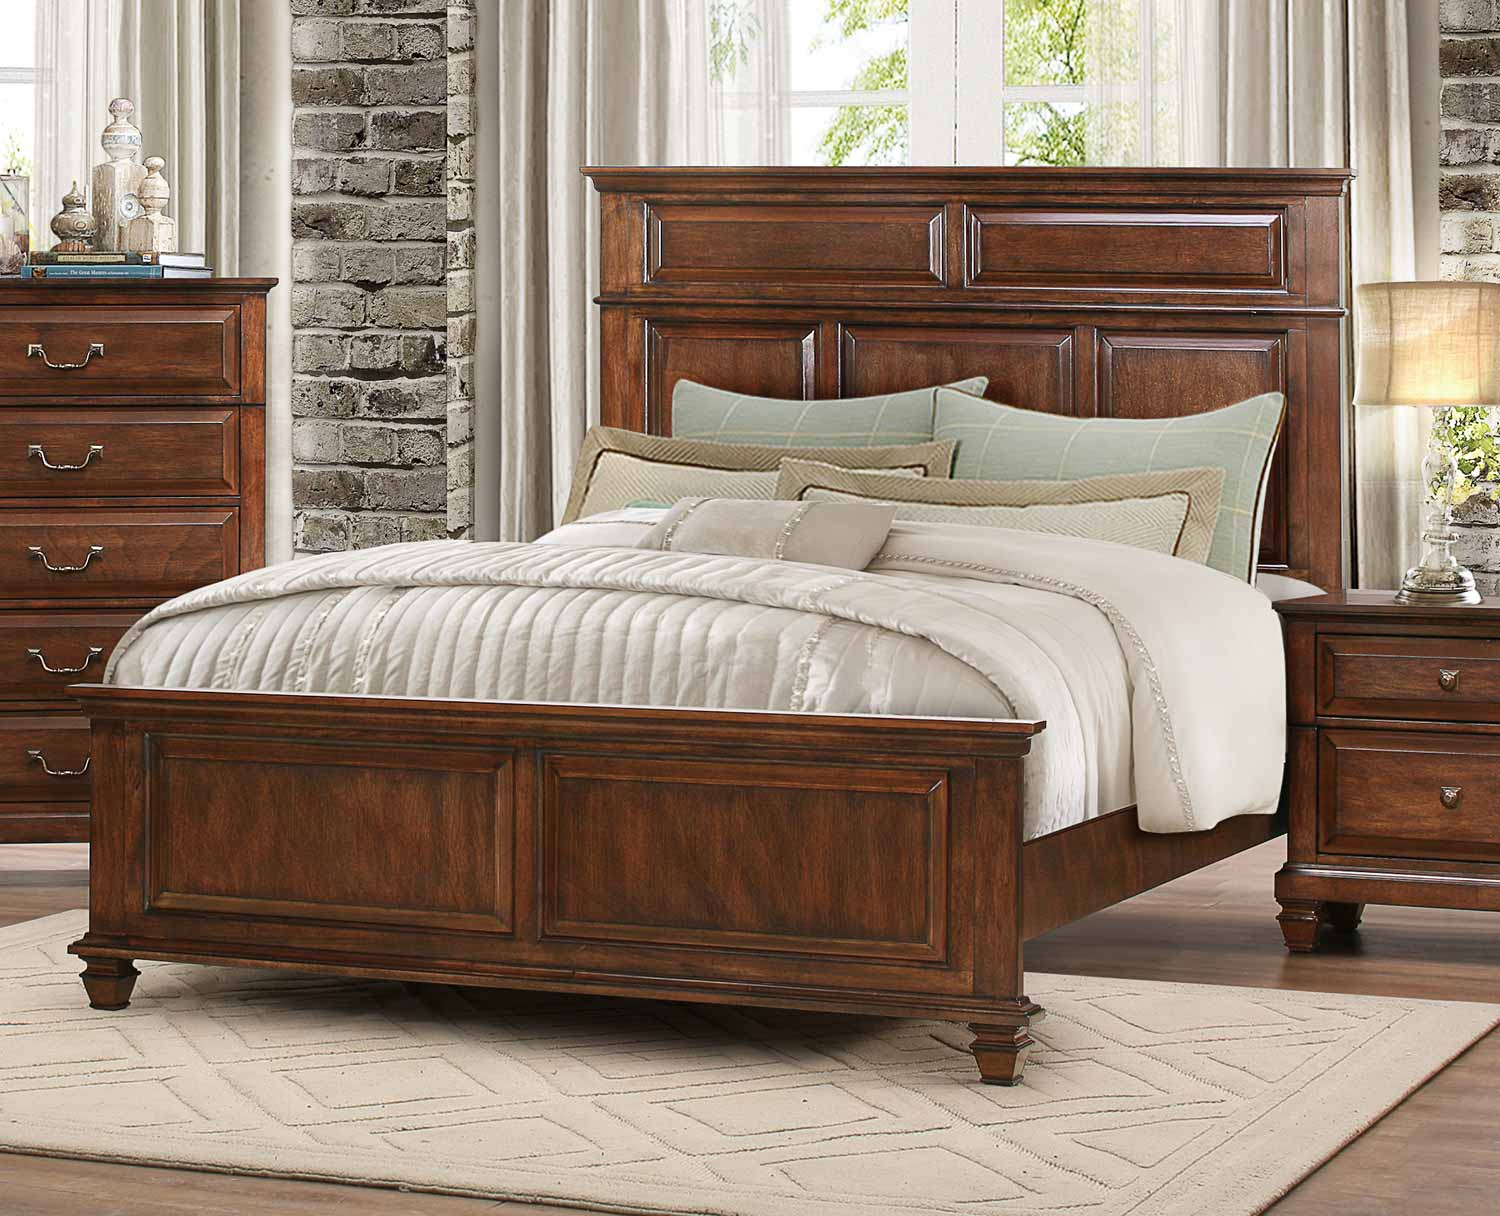 Homelegance Bardwell Panel Bed   Brown Cherry